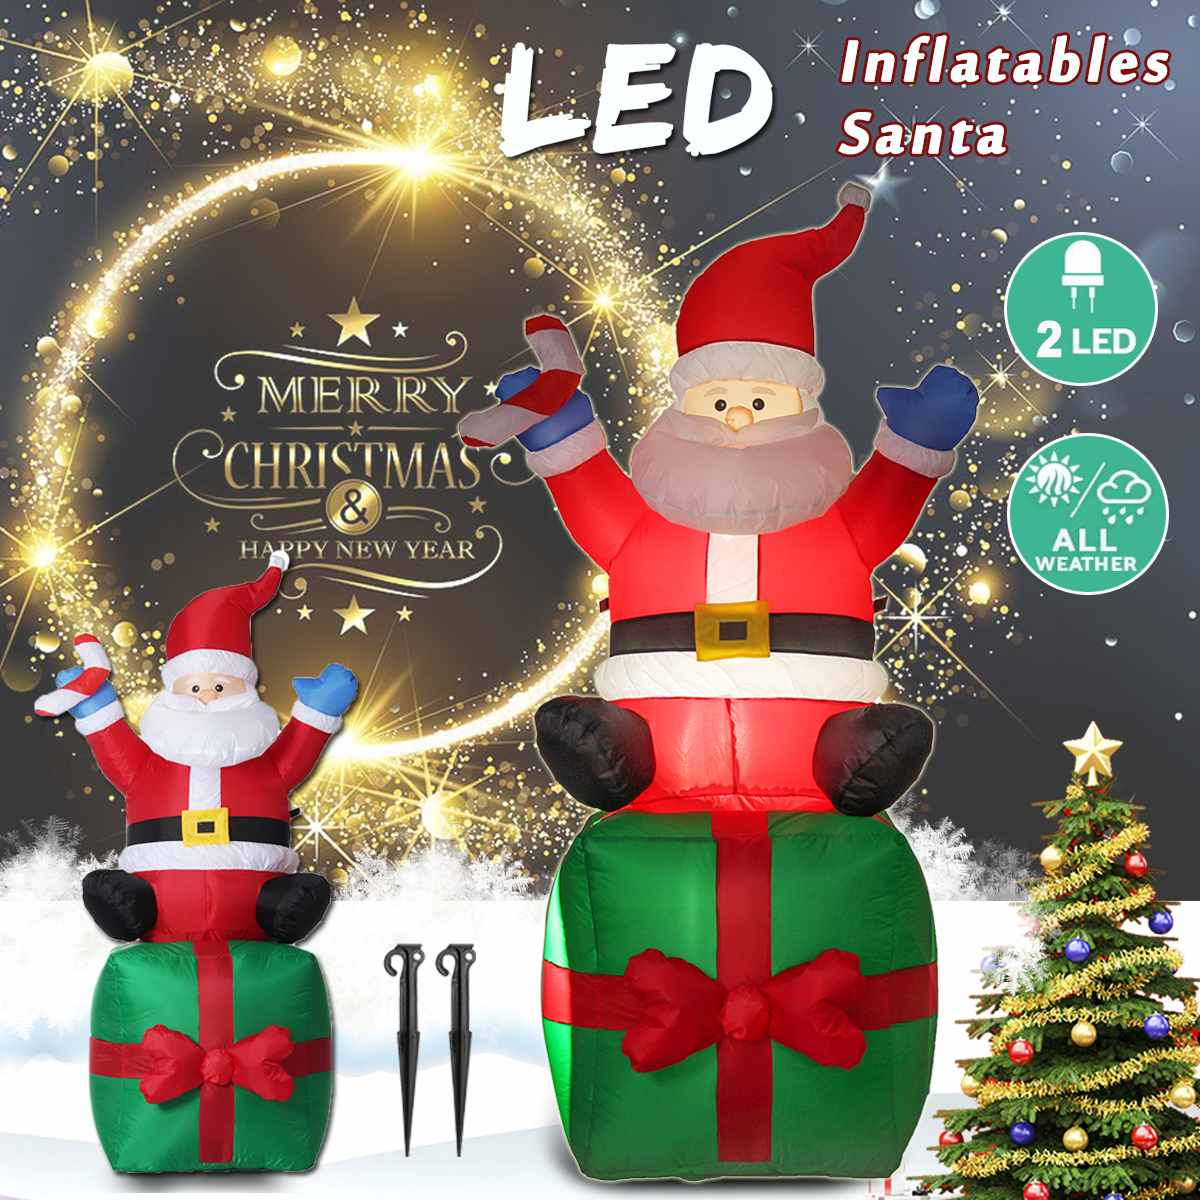 1.8M Giant Christmas Inflatable Santa on Present Xmas Santa Claus with Lights Outdoor Garden New Year Party Decoration Ornaments